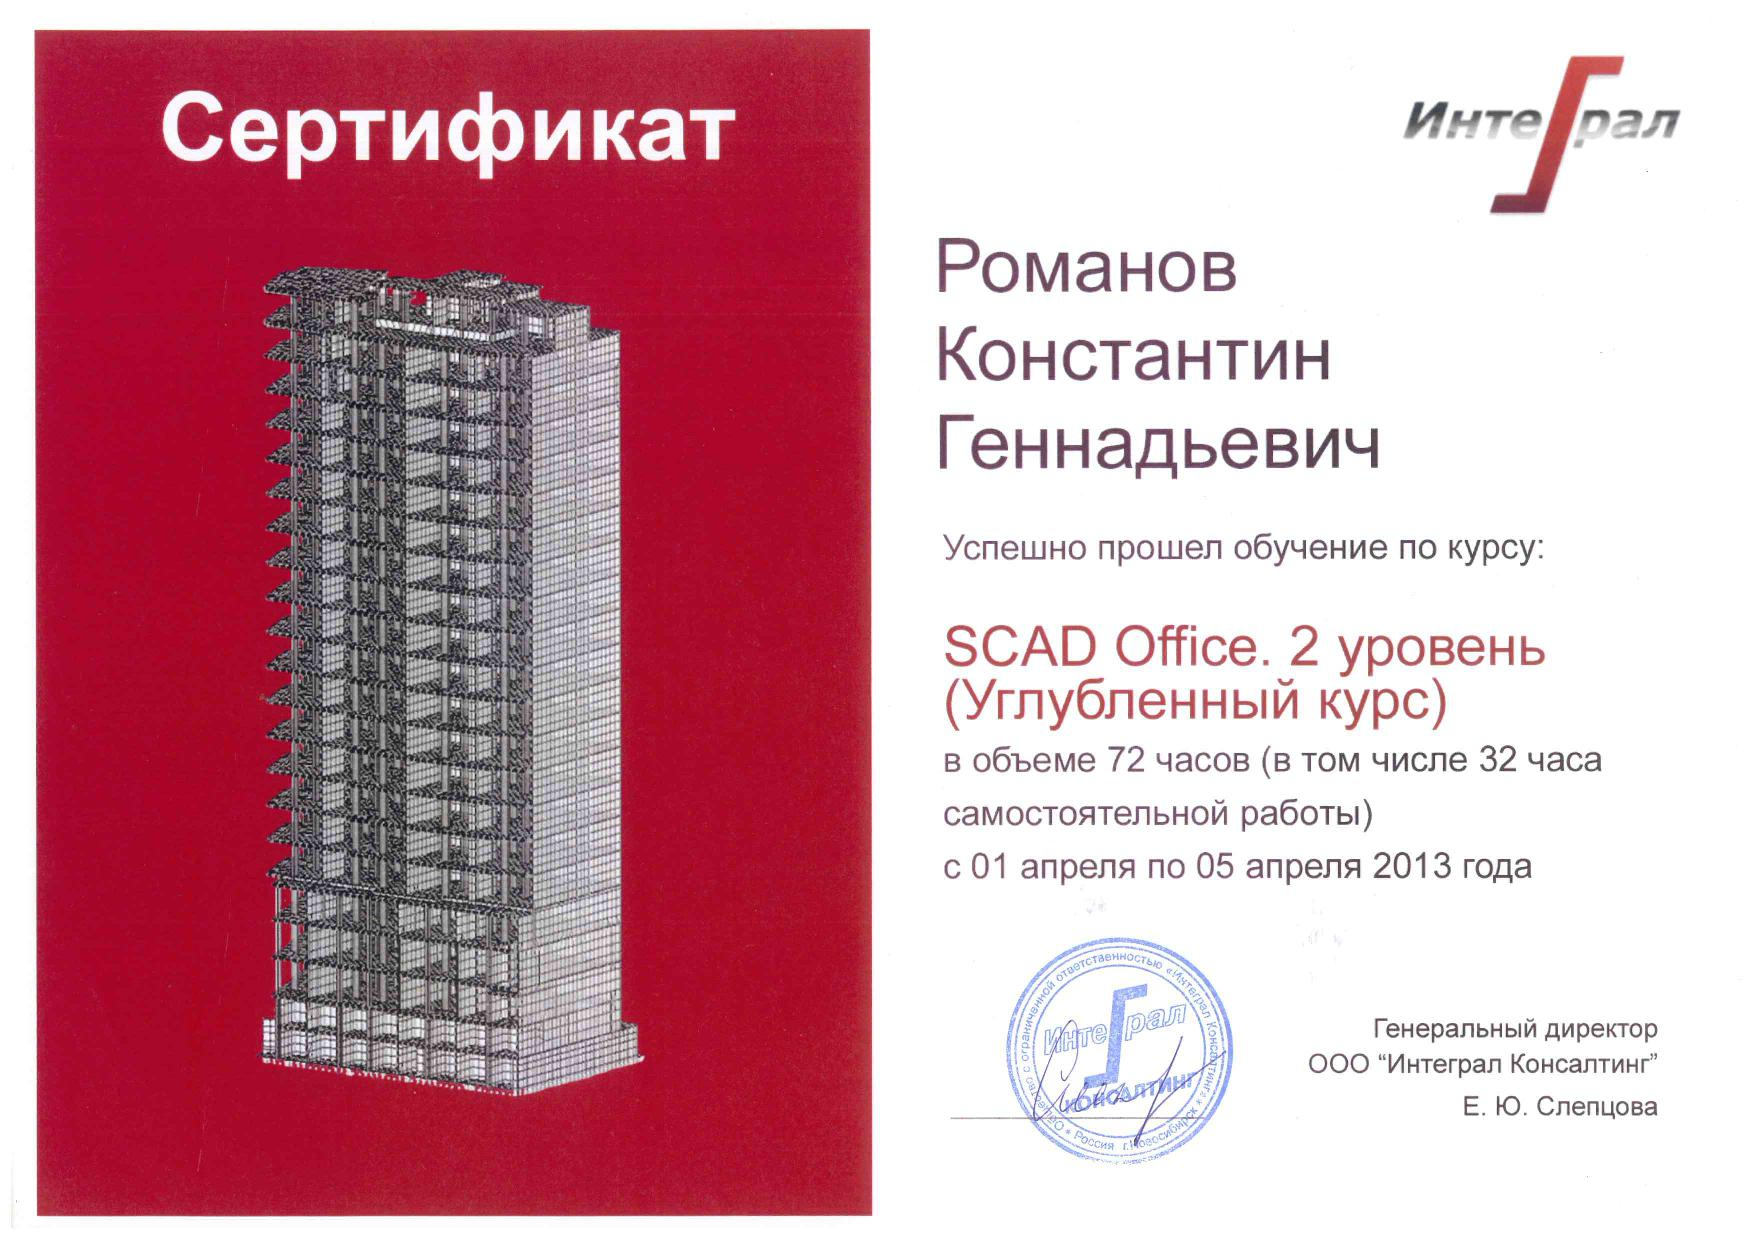 SCAD Office 2 уровень